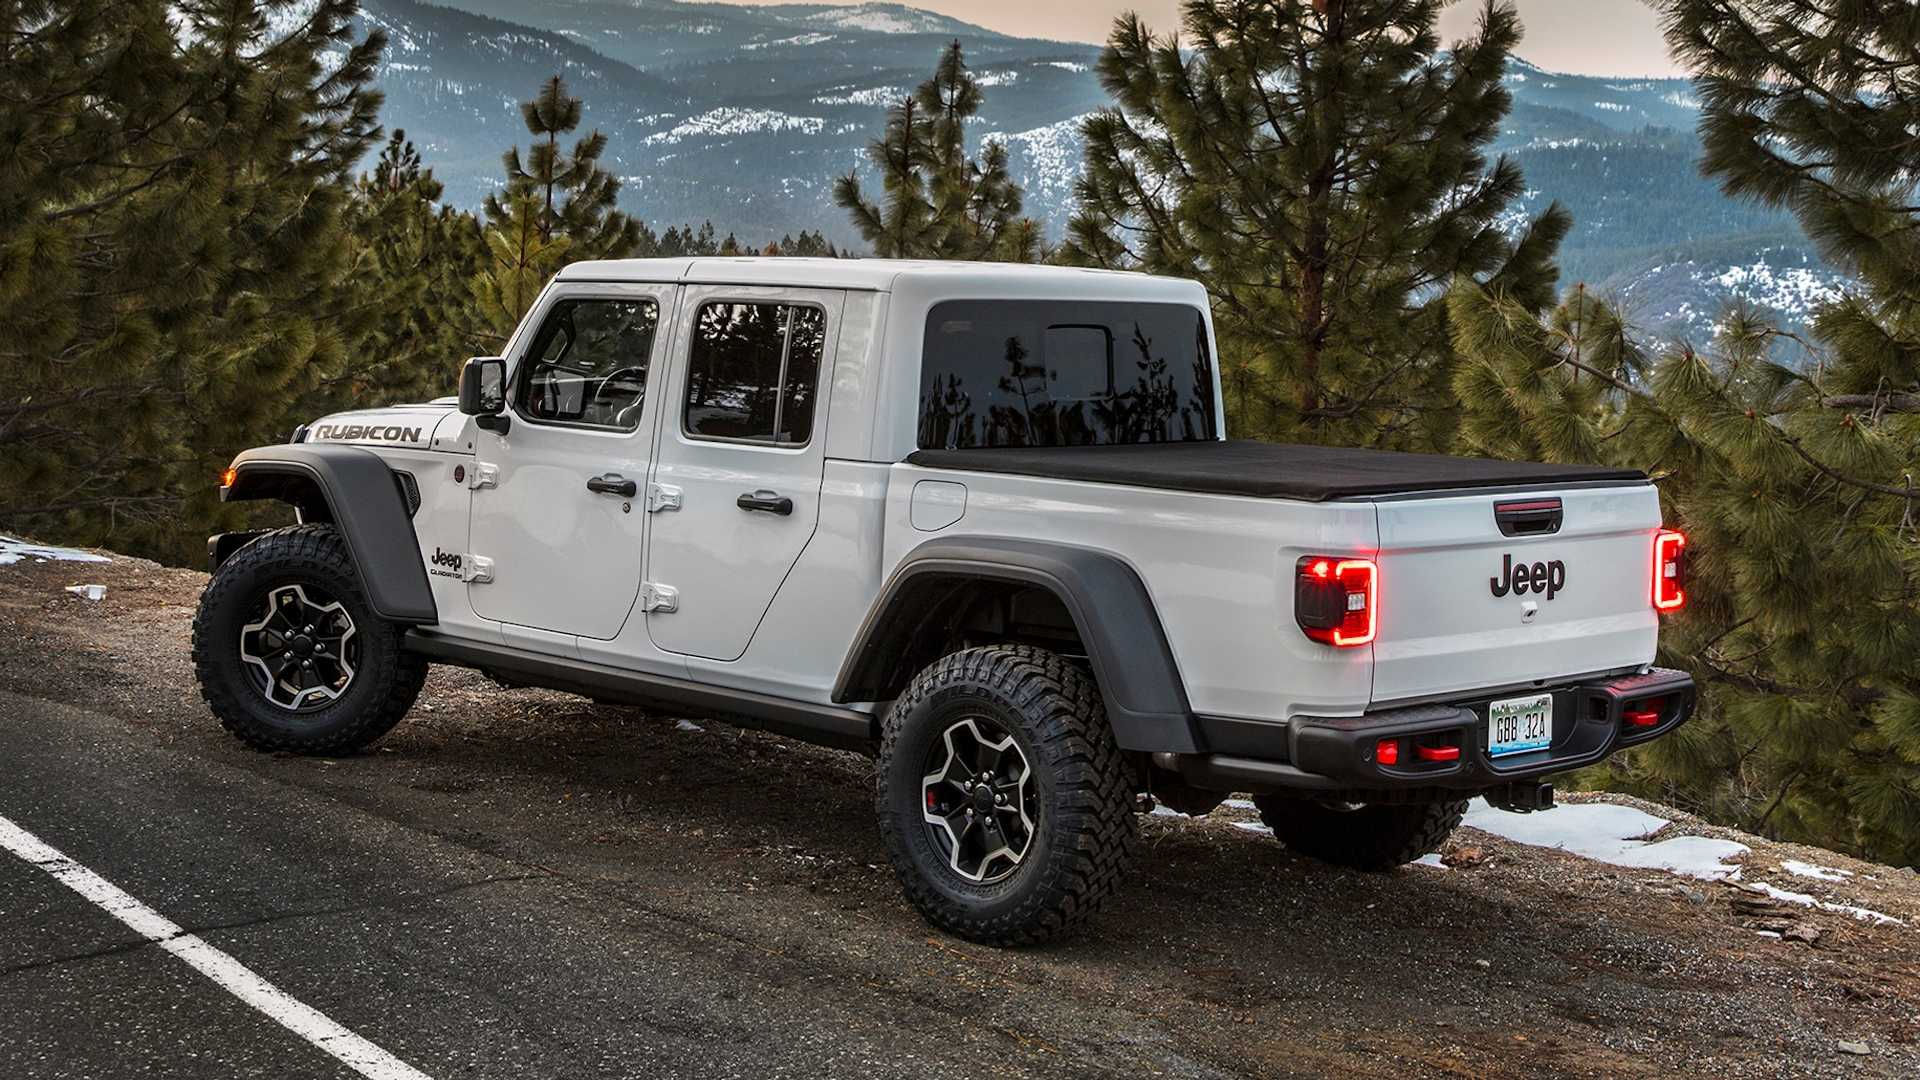 Jeep - The Best Pickup Trucks to Buy in 2020